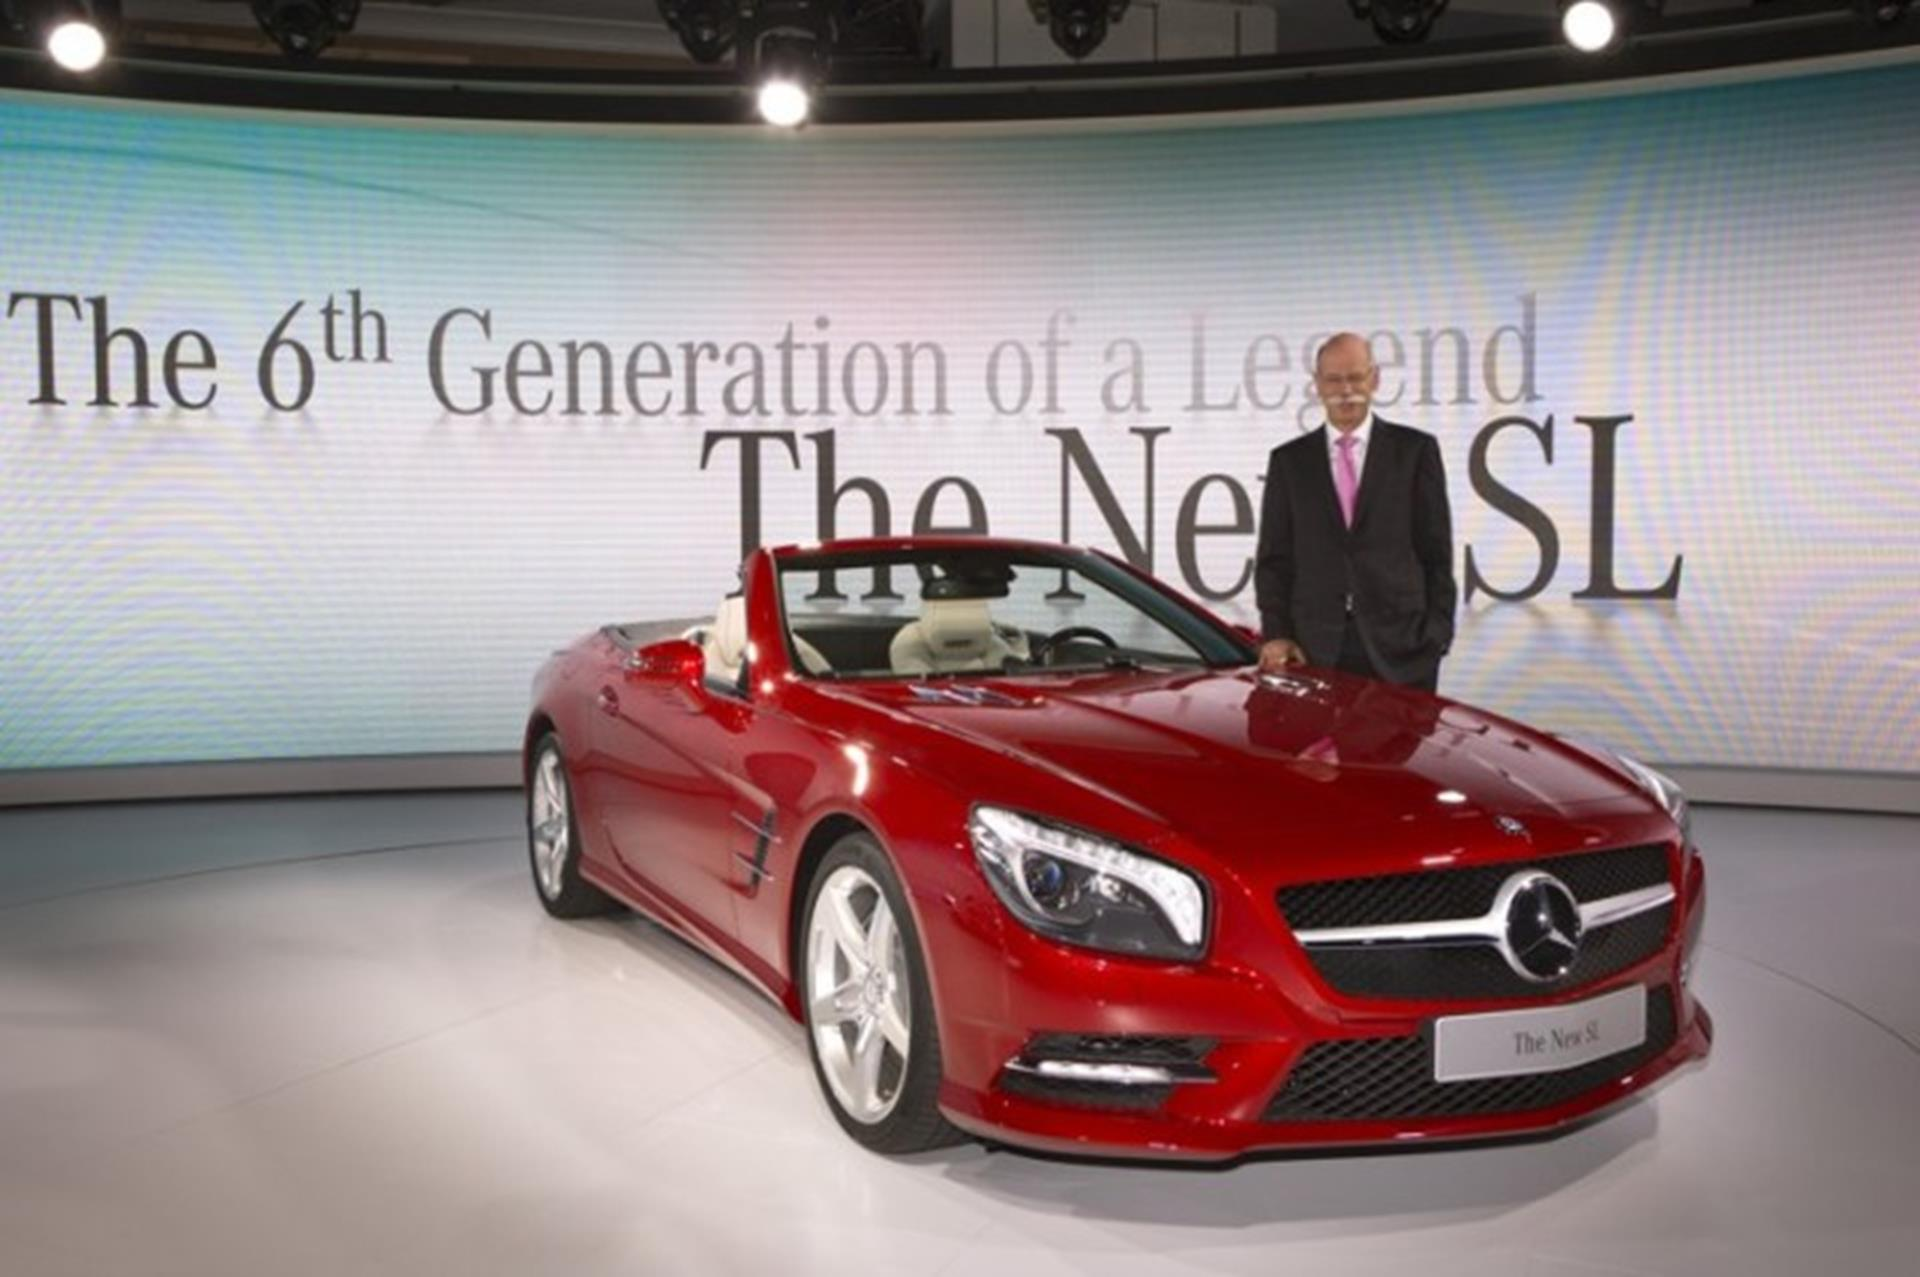 Dr. Dieter Zetsche, Chairman of the Board of Management